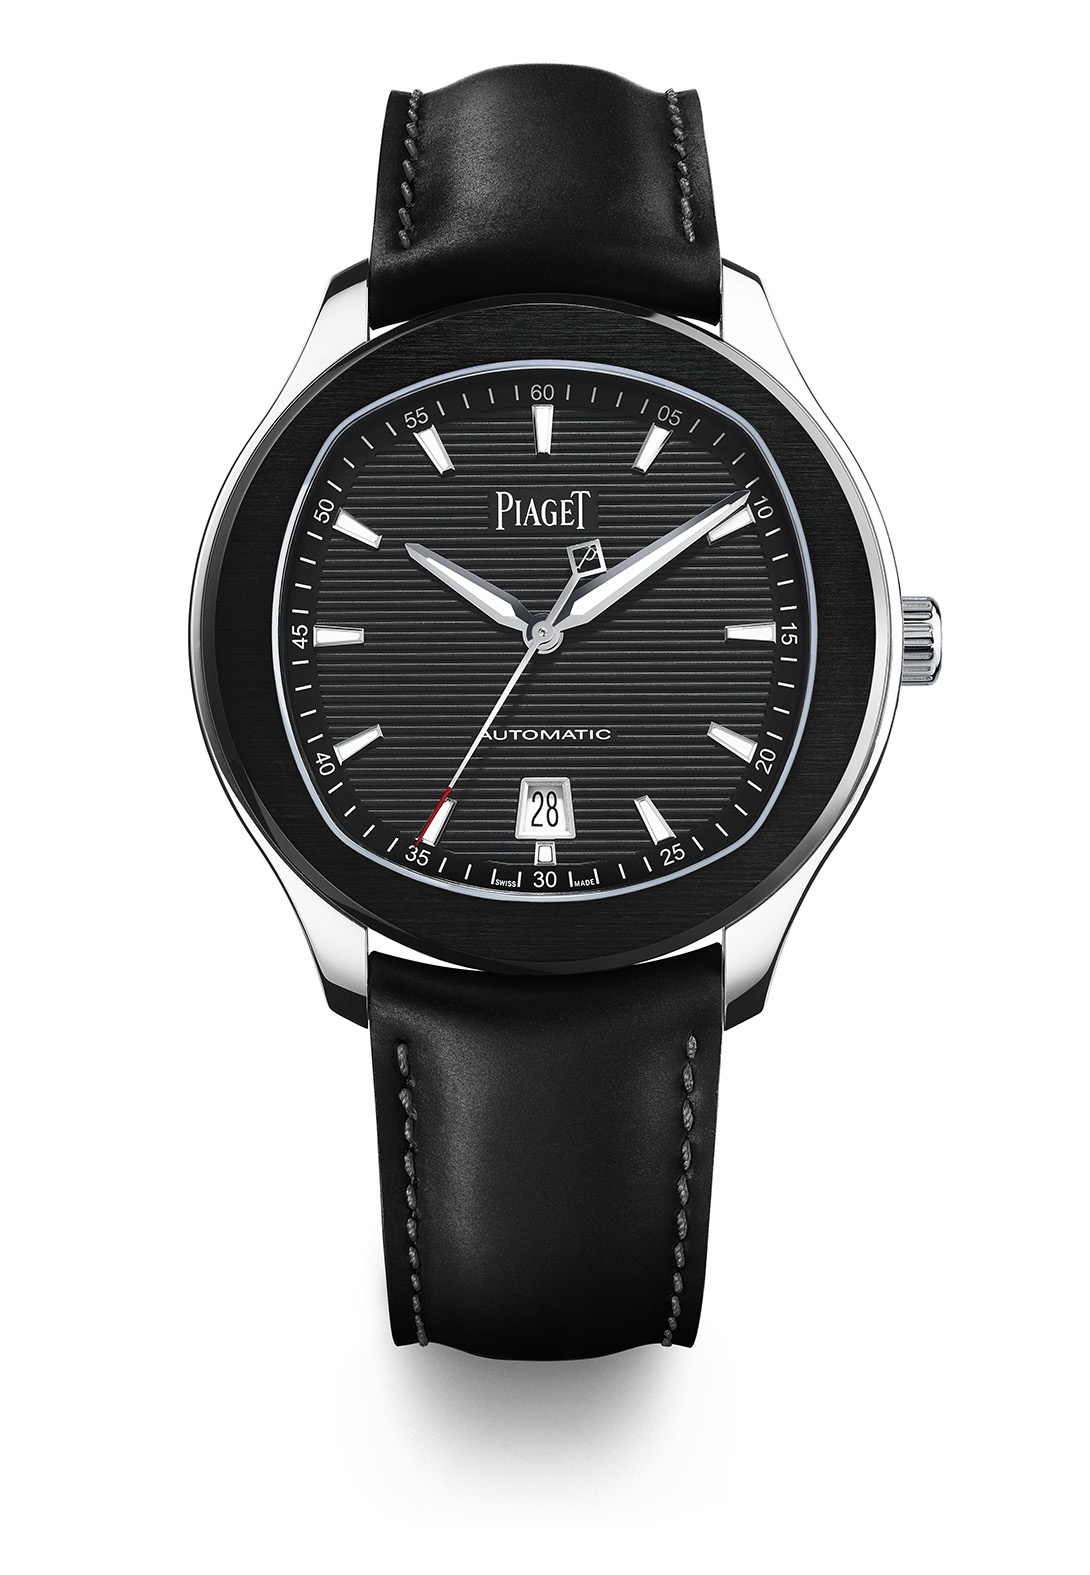 Piaget Polo S watch – 42 mm  Case in steel, sapphire case-back, black ADLC bezel, black colored dial with silvered appliques indexes with Superluminova, Manufacture Piaget 1110P self-winding mechanical movement (Hours, Minutes, Seconds, Date at 6 o'clock, slate grey oscillating weight) 9.4 mm thickness and water resistant up to 100 m Black rubber strap set with an ardillon buckle Delivered with a second black calfskin strap Edition limited to 888 pieces